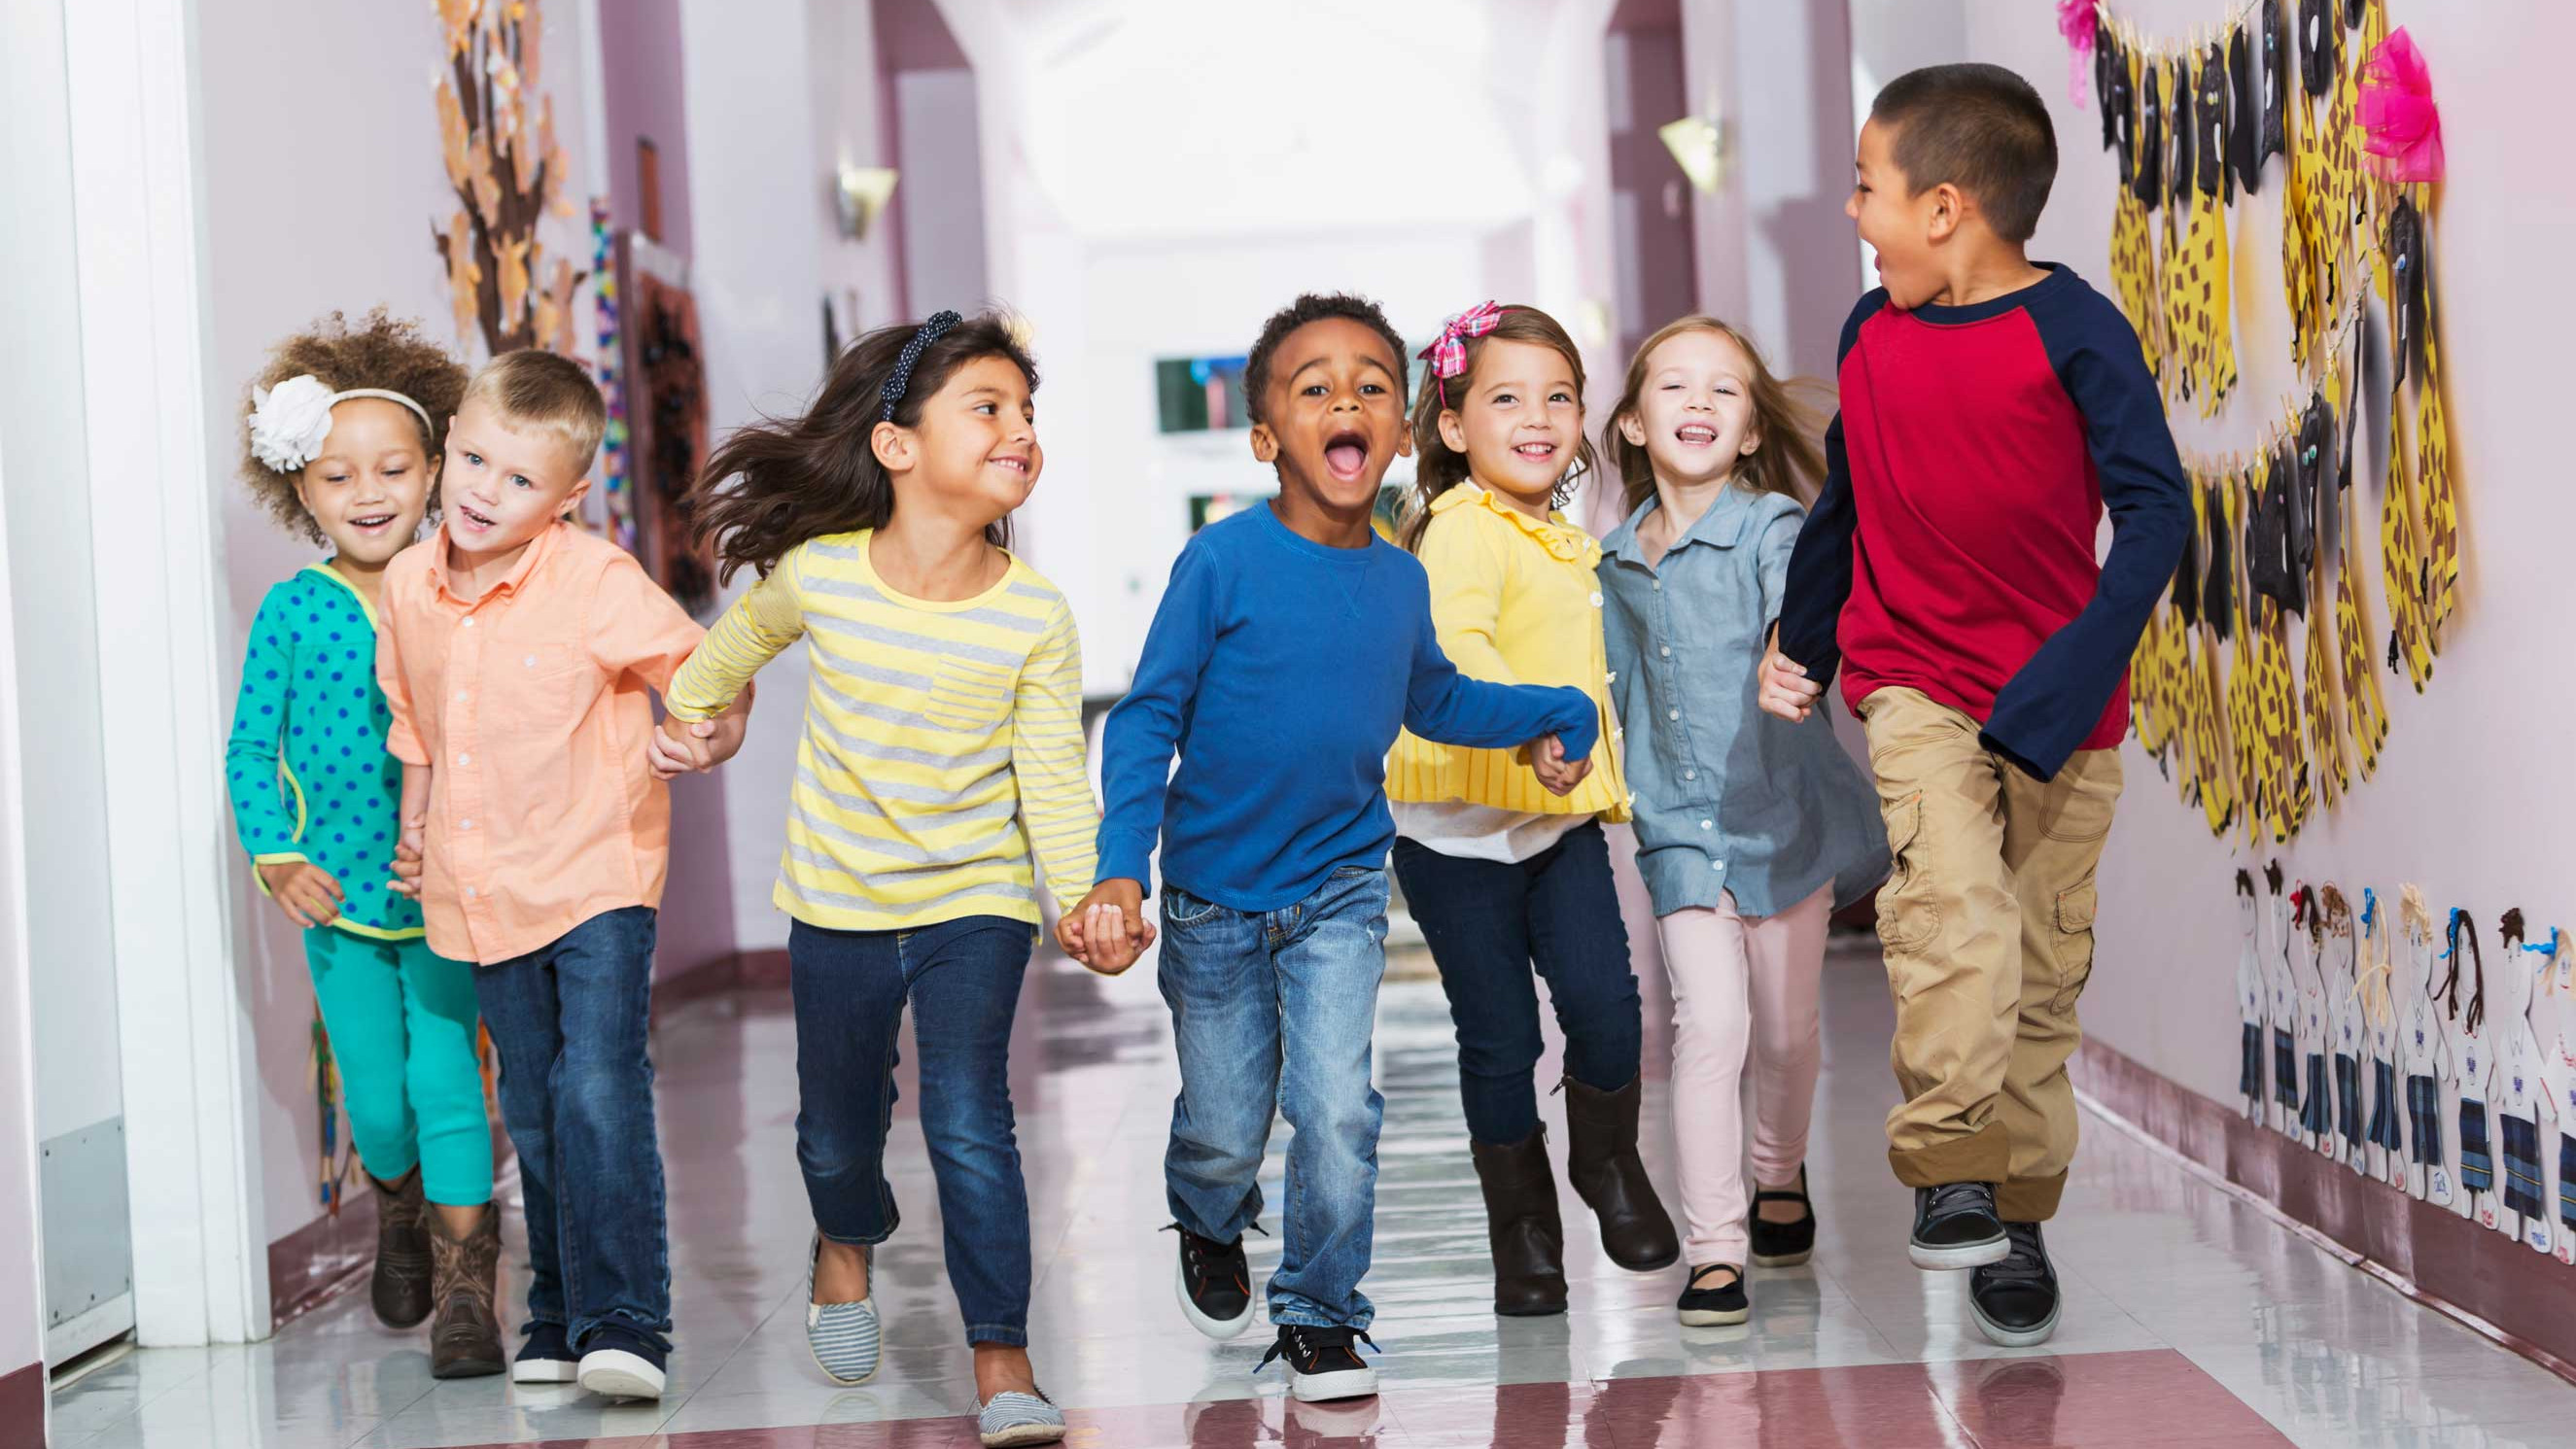 Multiracial-group-of-preschoolers-running-down-hallway-2650x1767